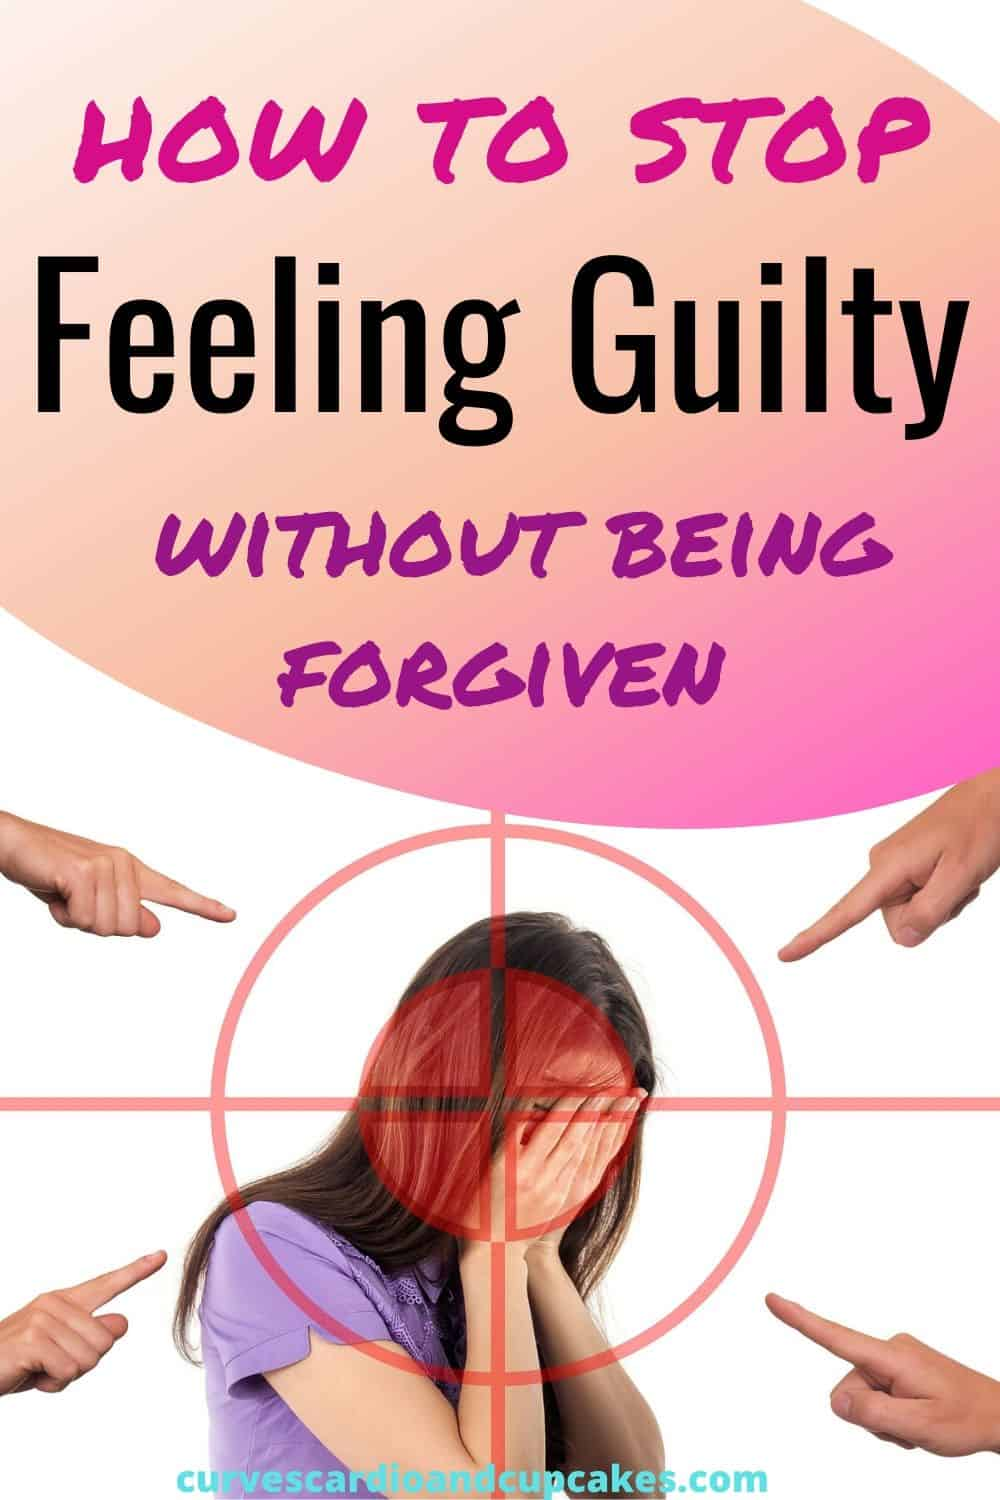 How to stop feeling guilty without being forgiven